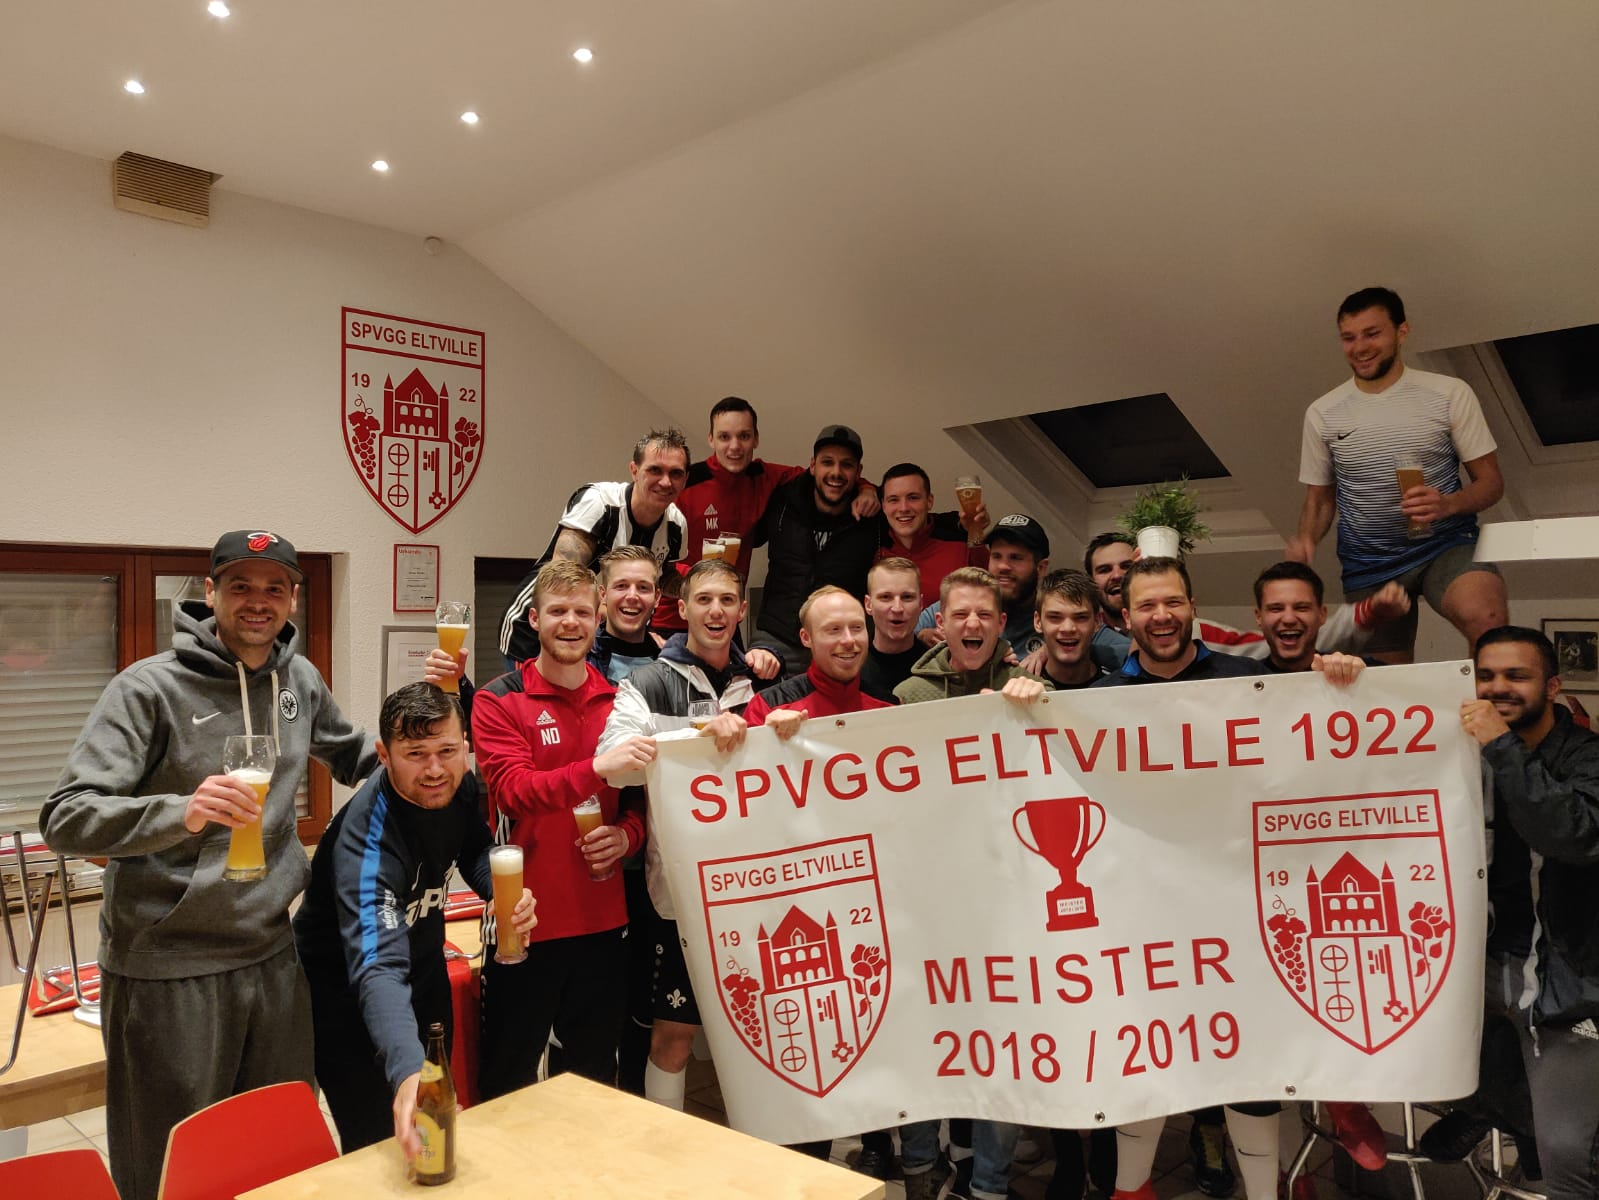 Meister2019